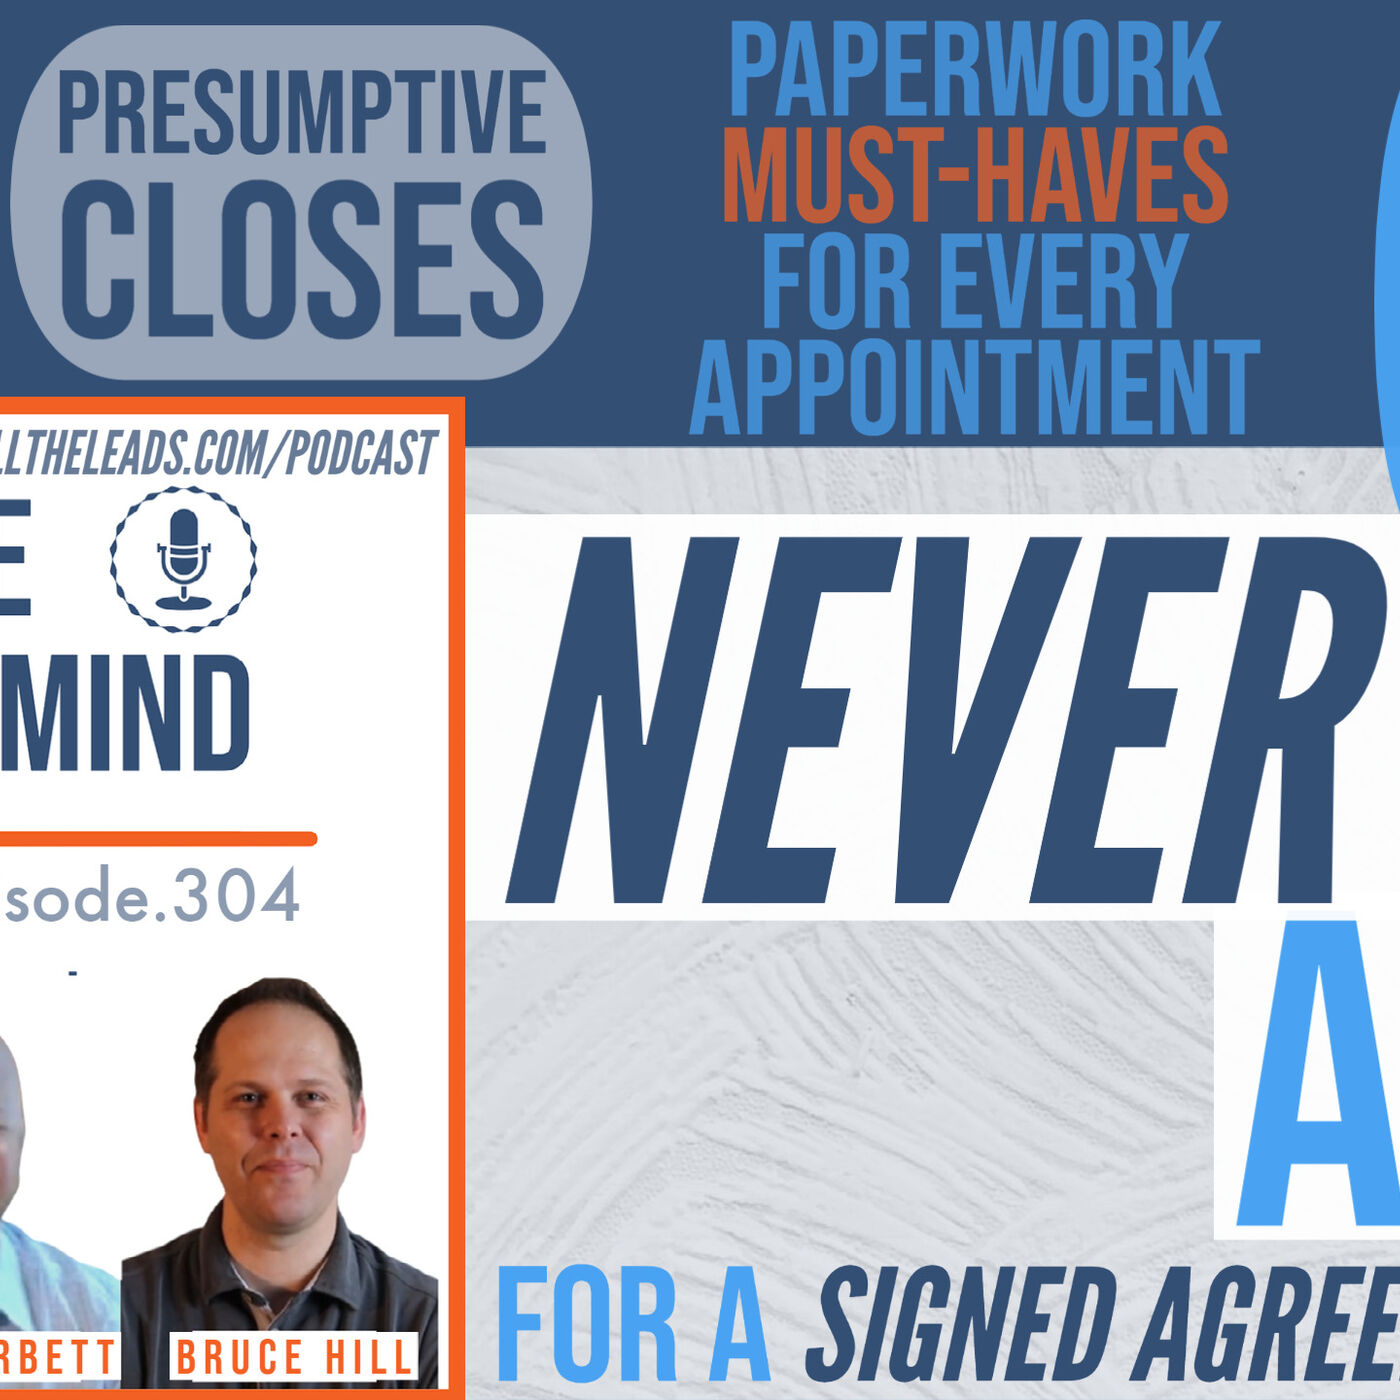 NEVER Ask For A Signed Agreement Again: Presumptive Closes, Paperwork Must-Haves, and Plan B Options For Appointments. #304